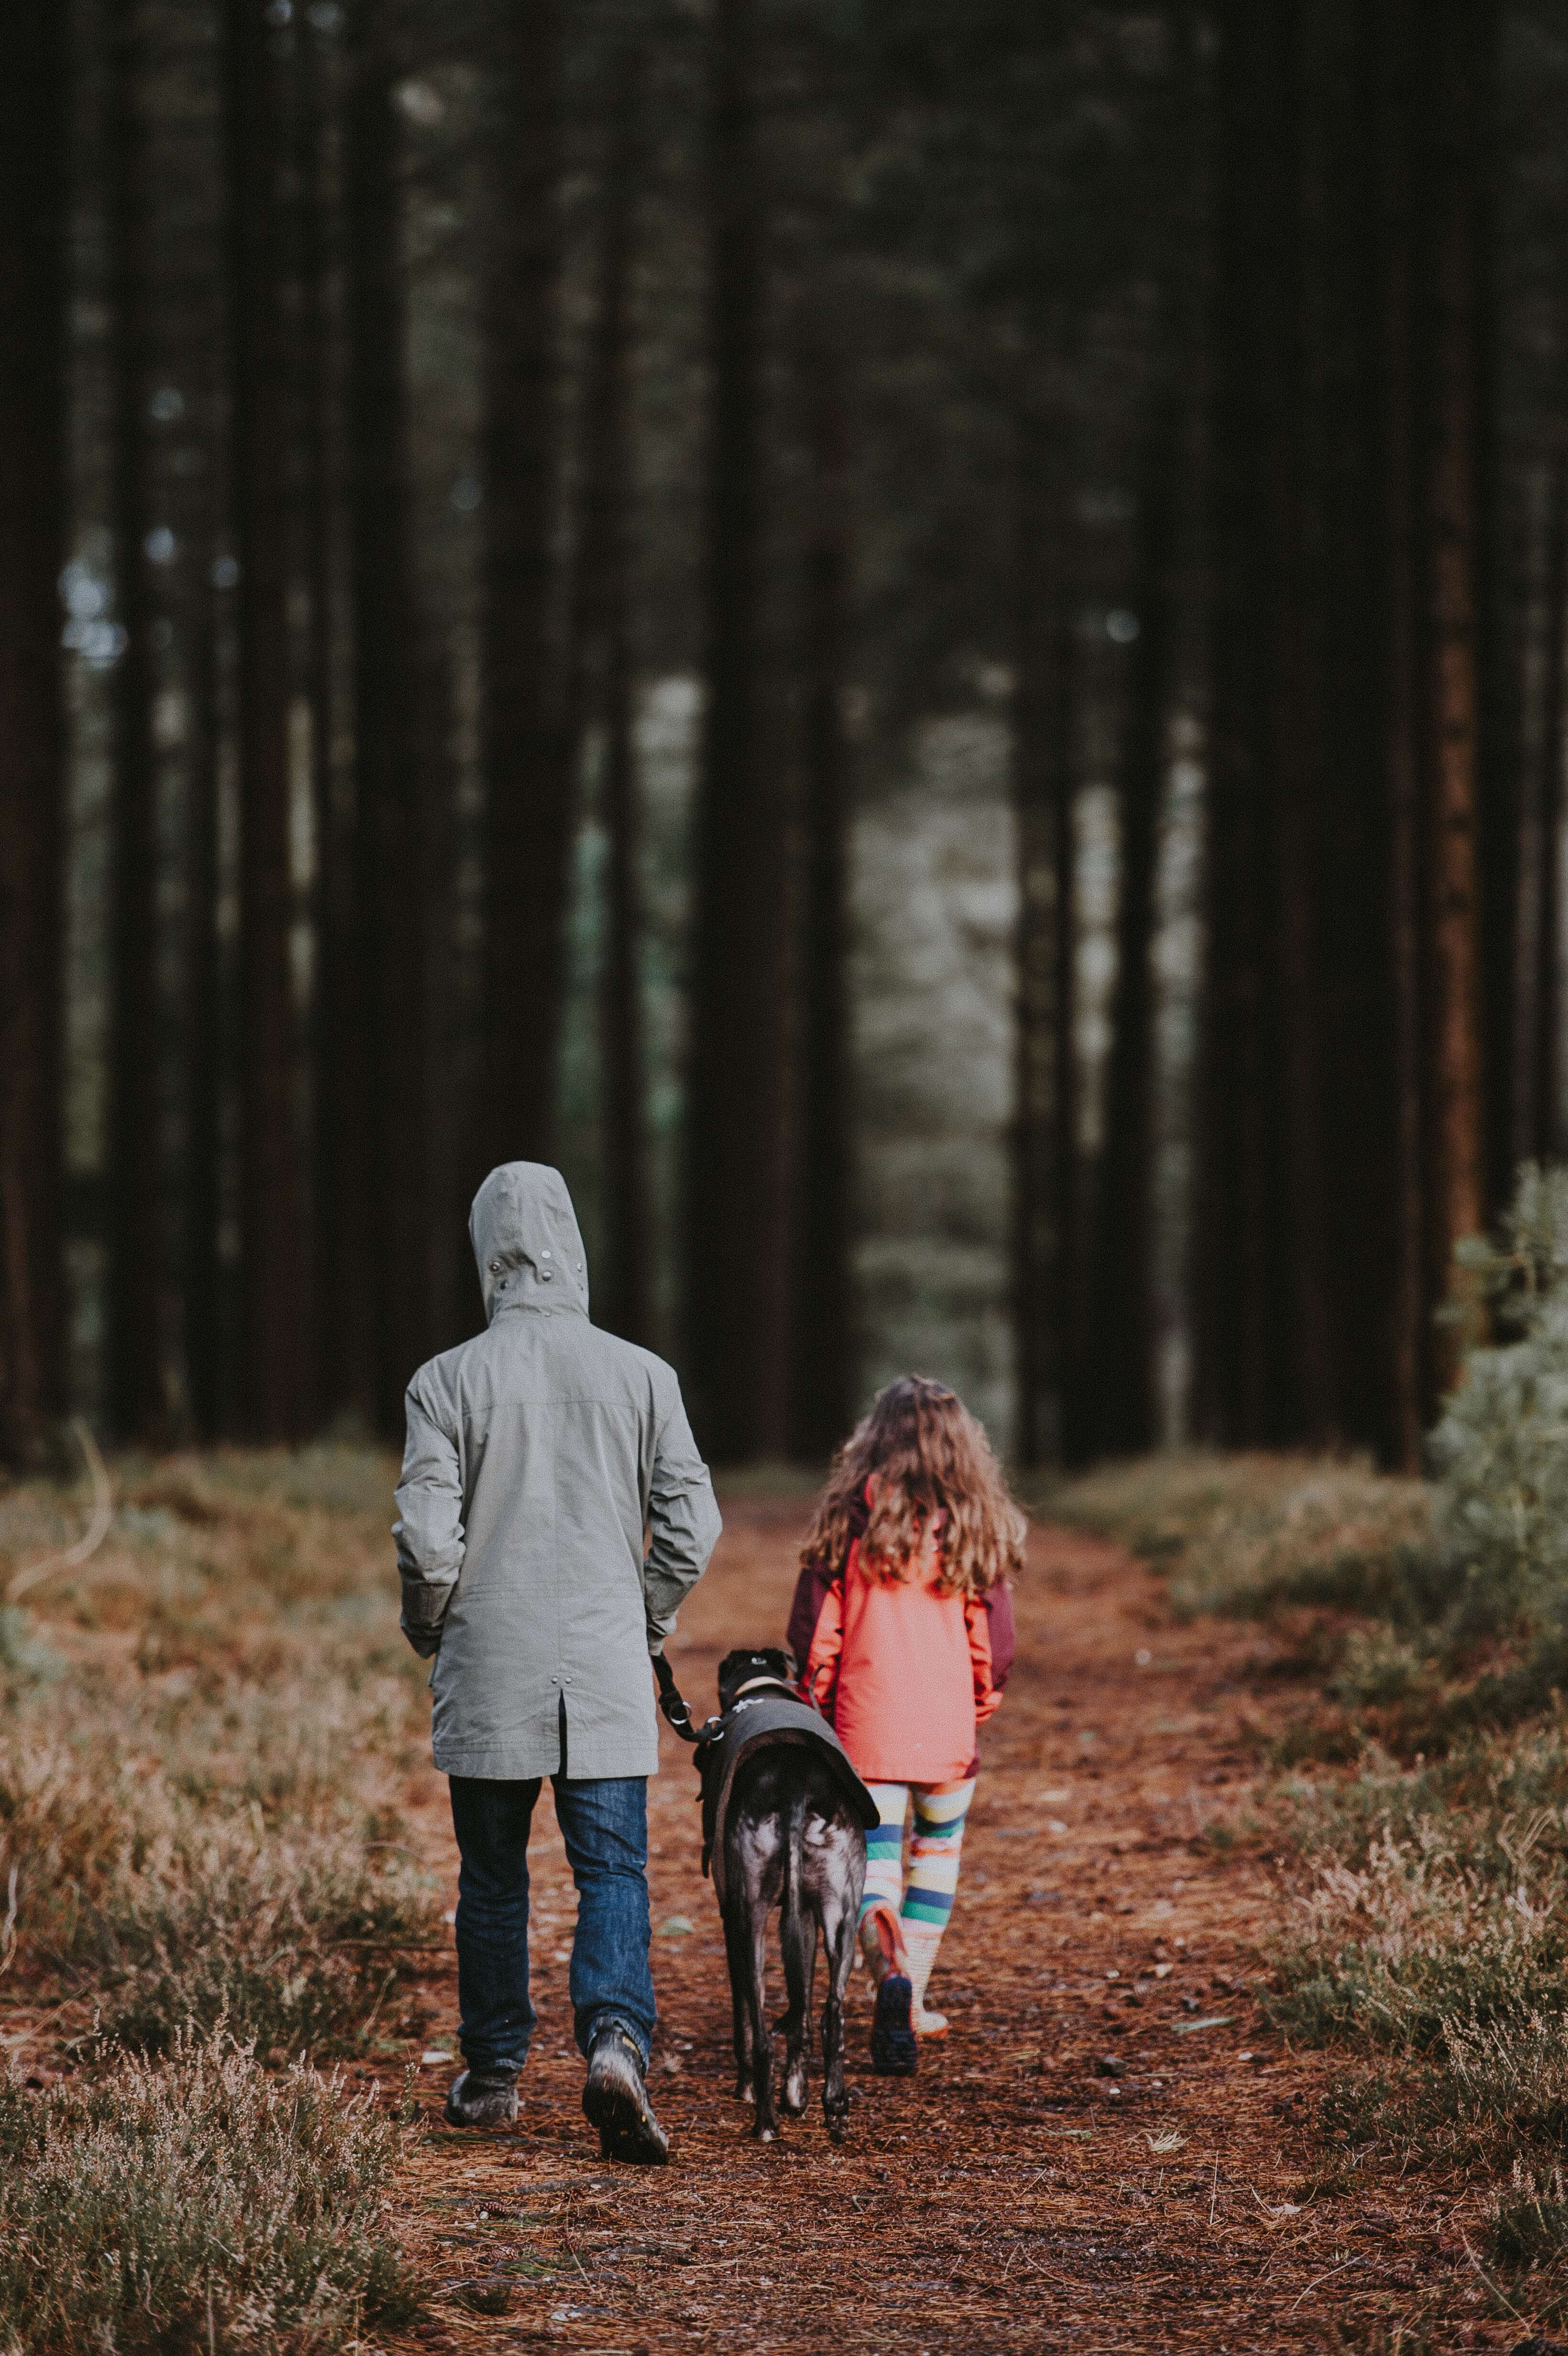 children with pet walking in the forest